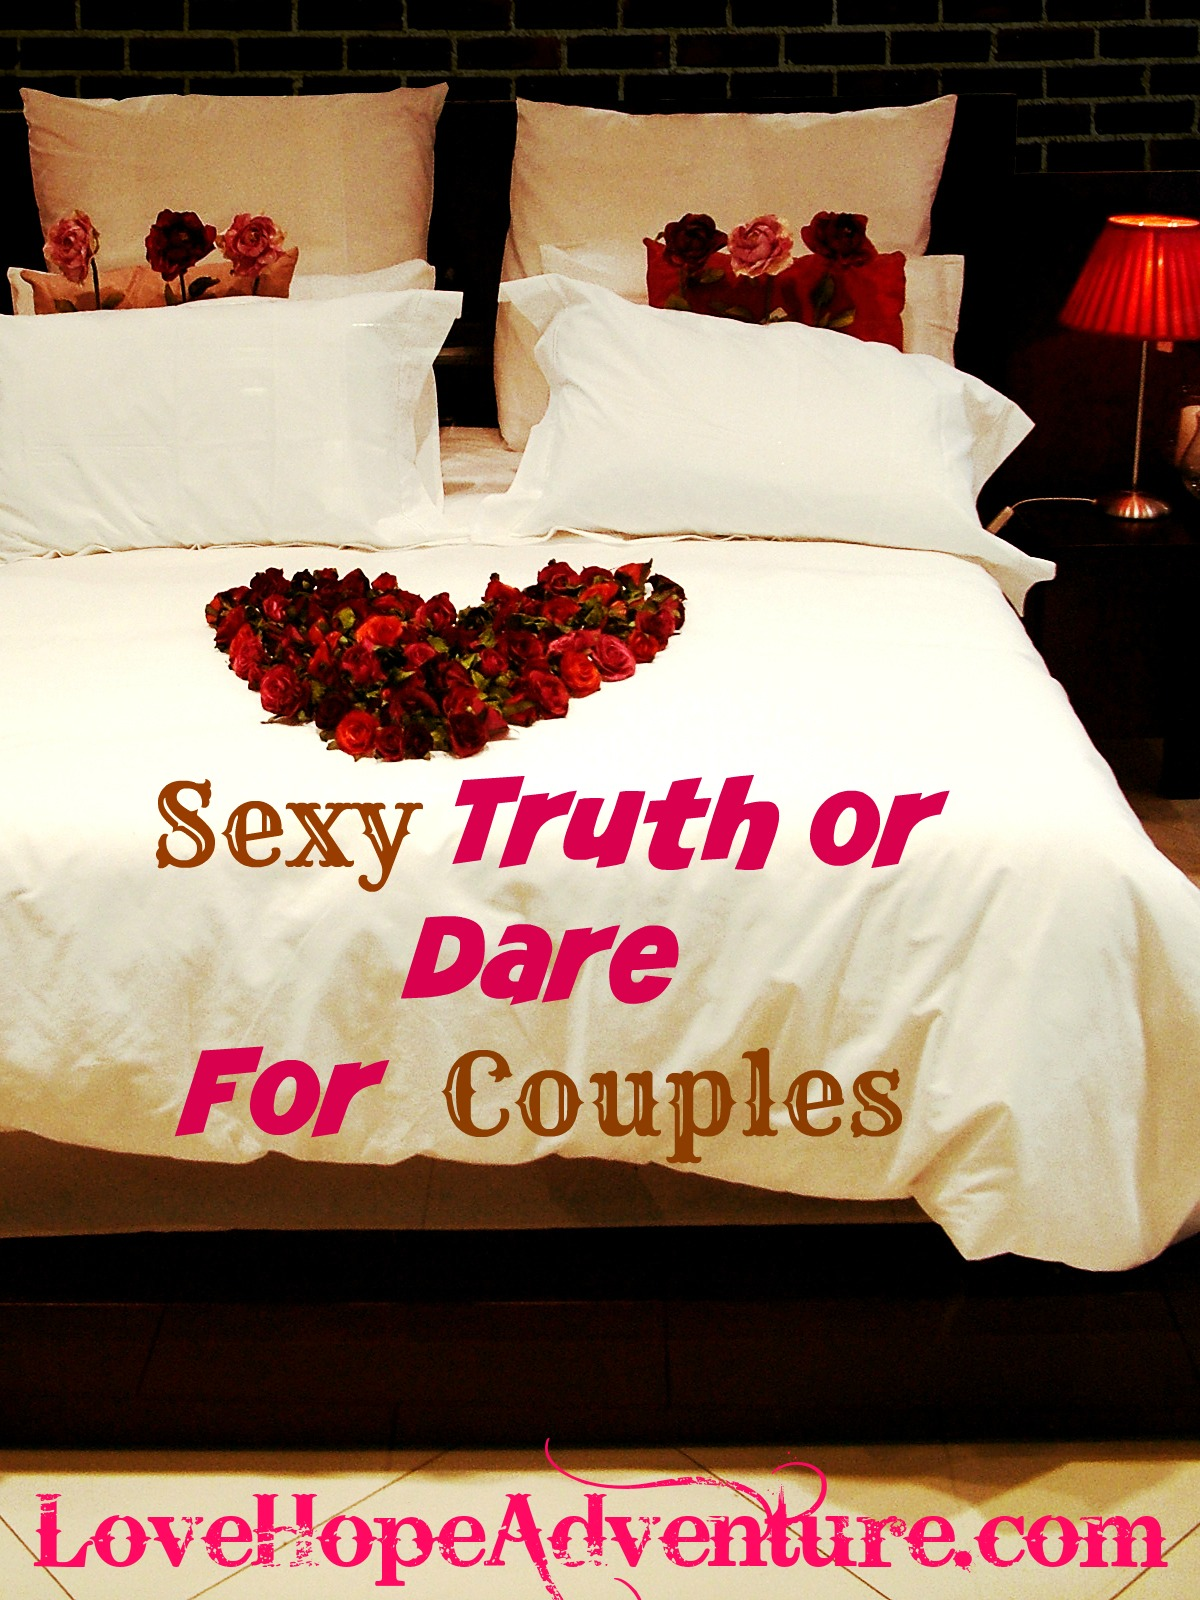 couples truth or dare bedroom game - love hope adventure marriage